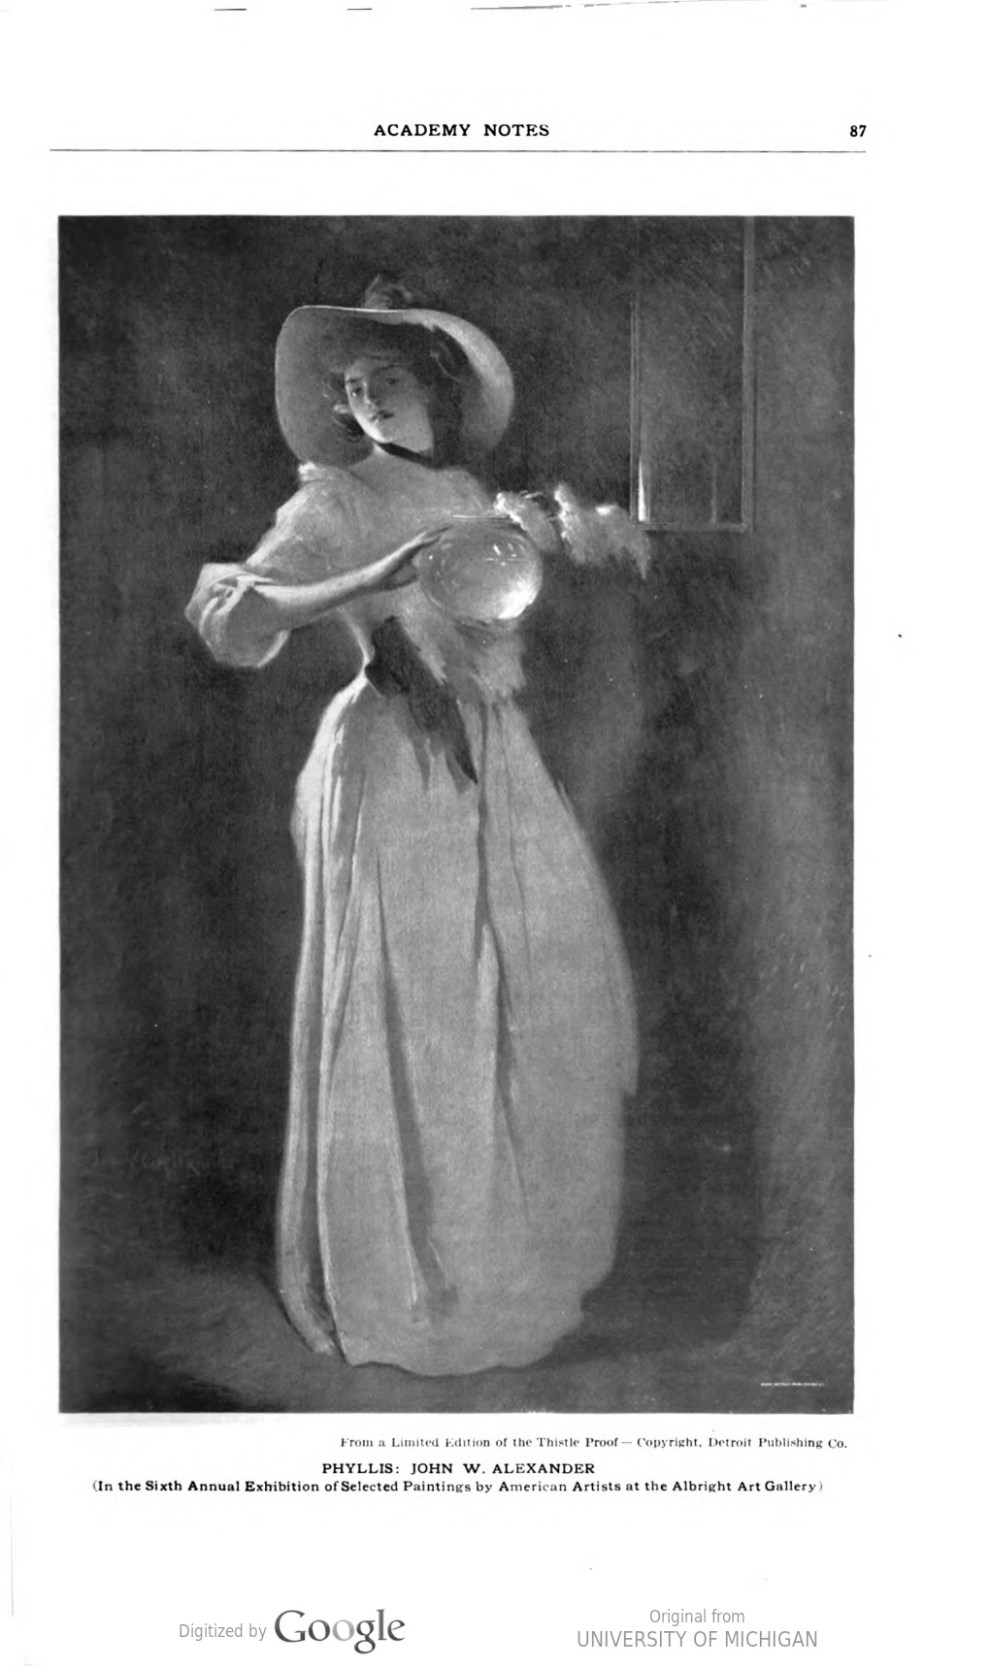 """Academy Notes, Buffalo Fine Arts Academy, Albright Art Gallery, Buffalo, NY, """"The Sixth Annual Exhibition of Selected Paintings by American Artists at the Albright Art Gallery"""", July, 1911, Volume 6, Number 3, page 76-93, not illustrated"""